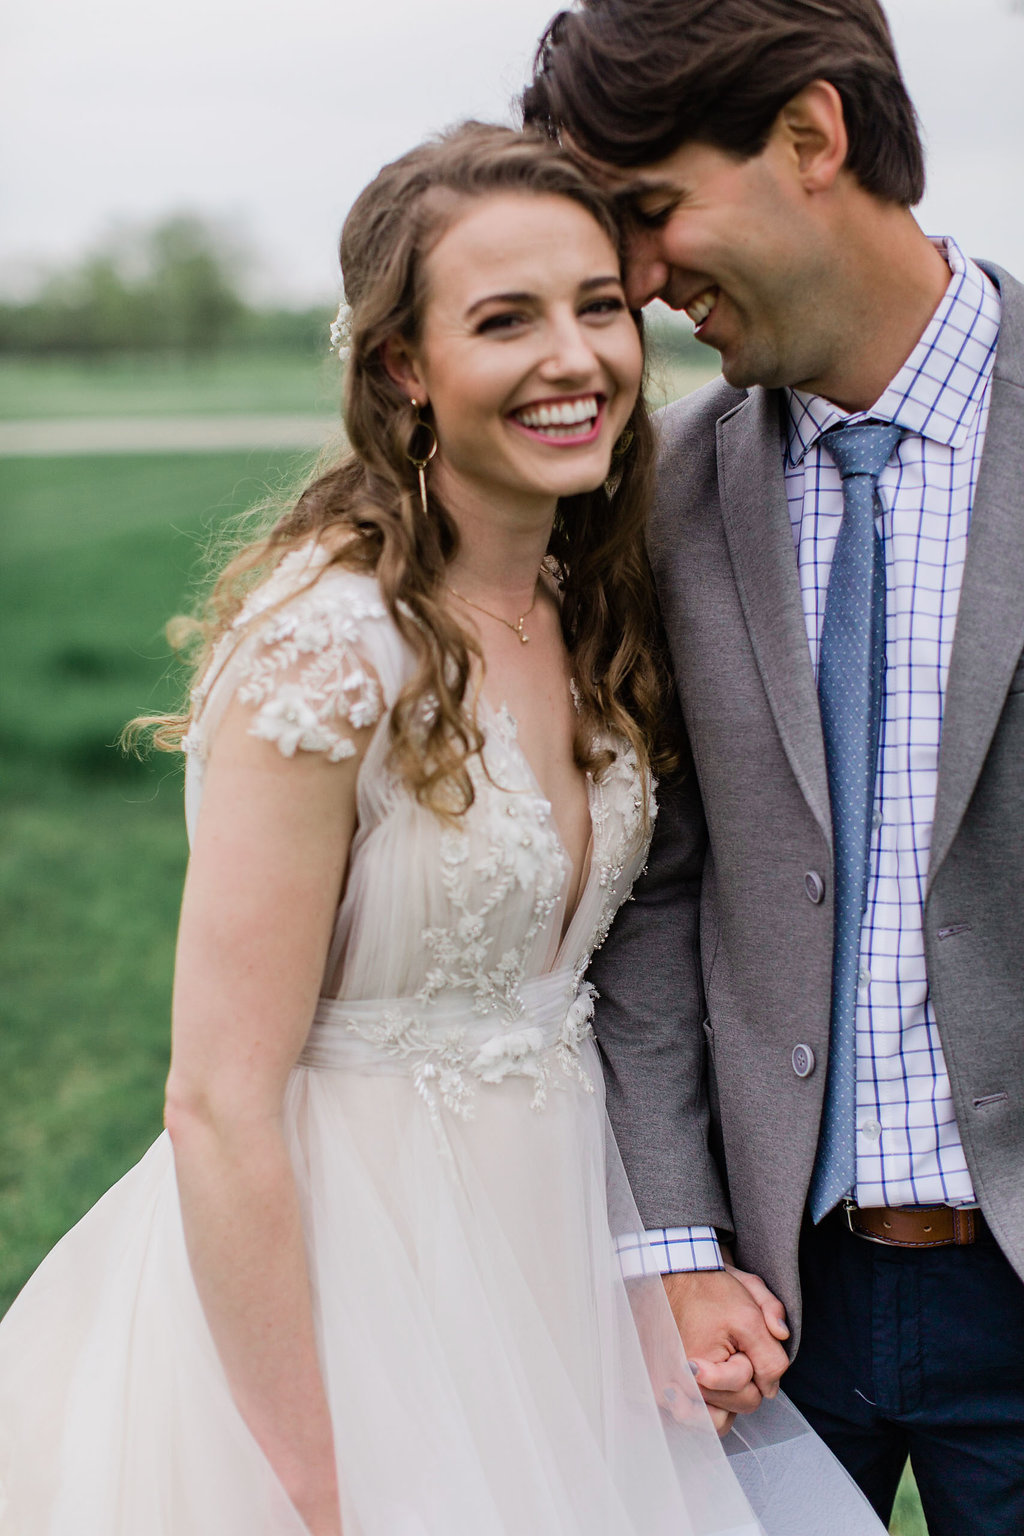 Elizabeth M Photography Washington DC Wedding Photographer Northern Virginia Maryland Destination Fine Art Elegant Engagement23